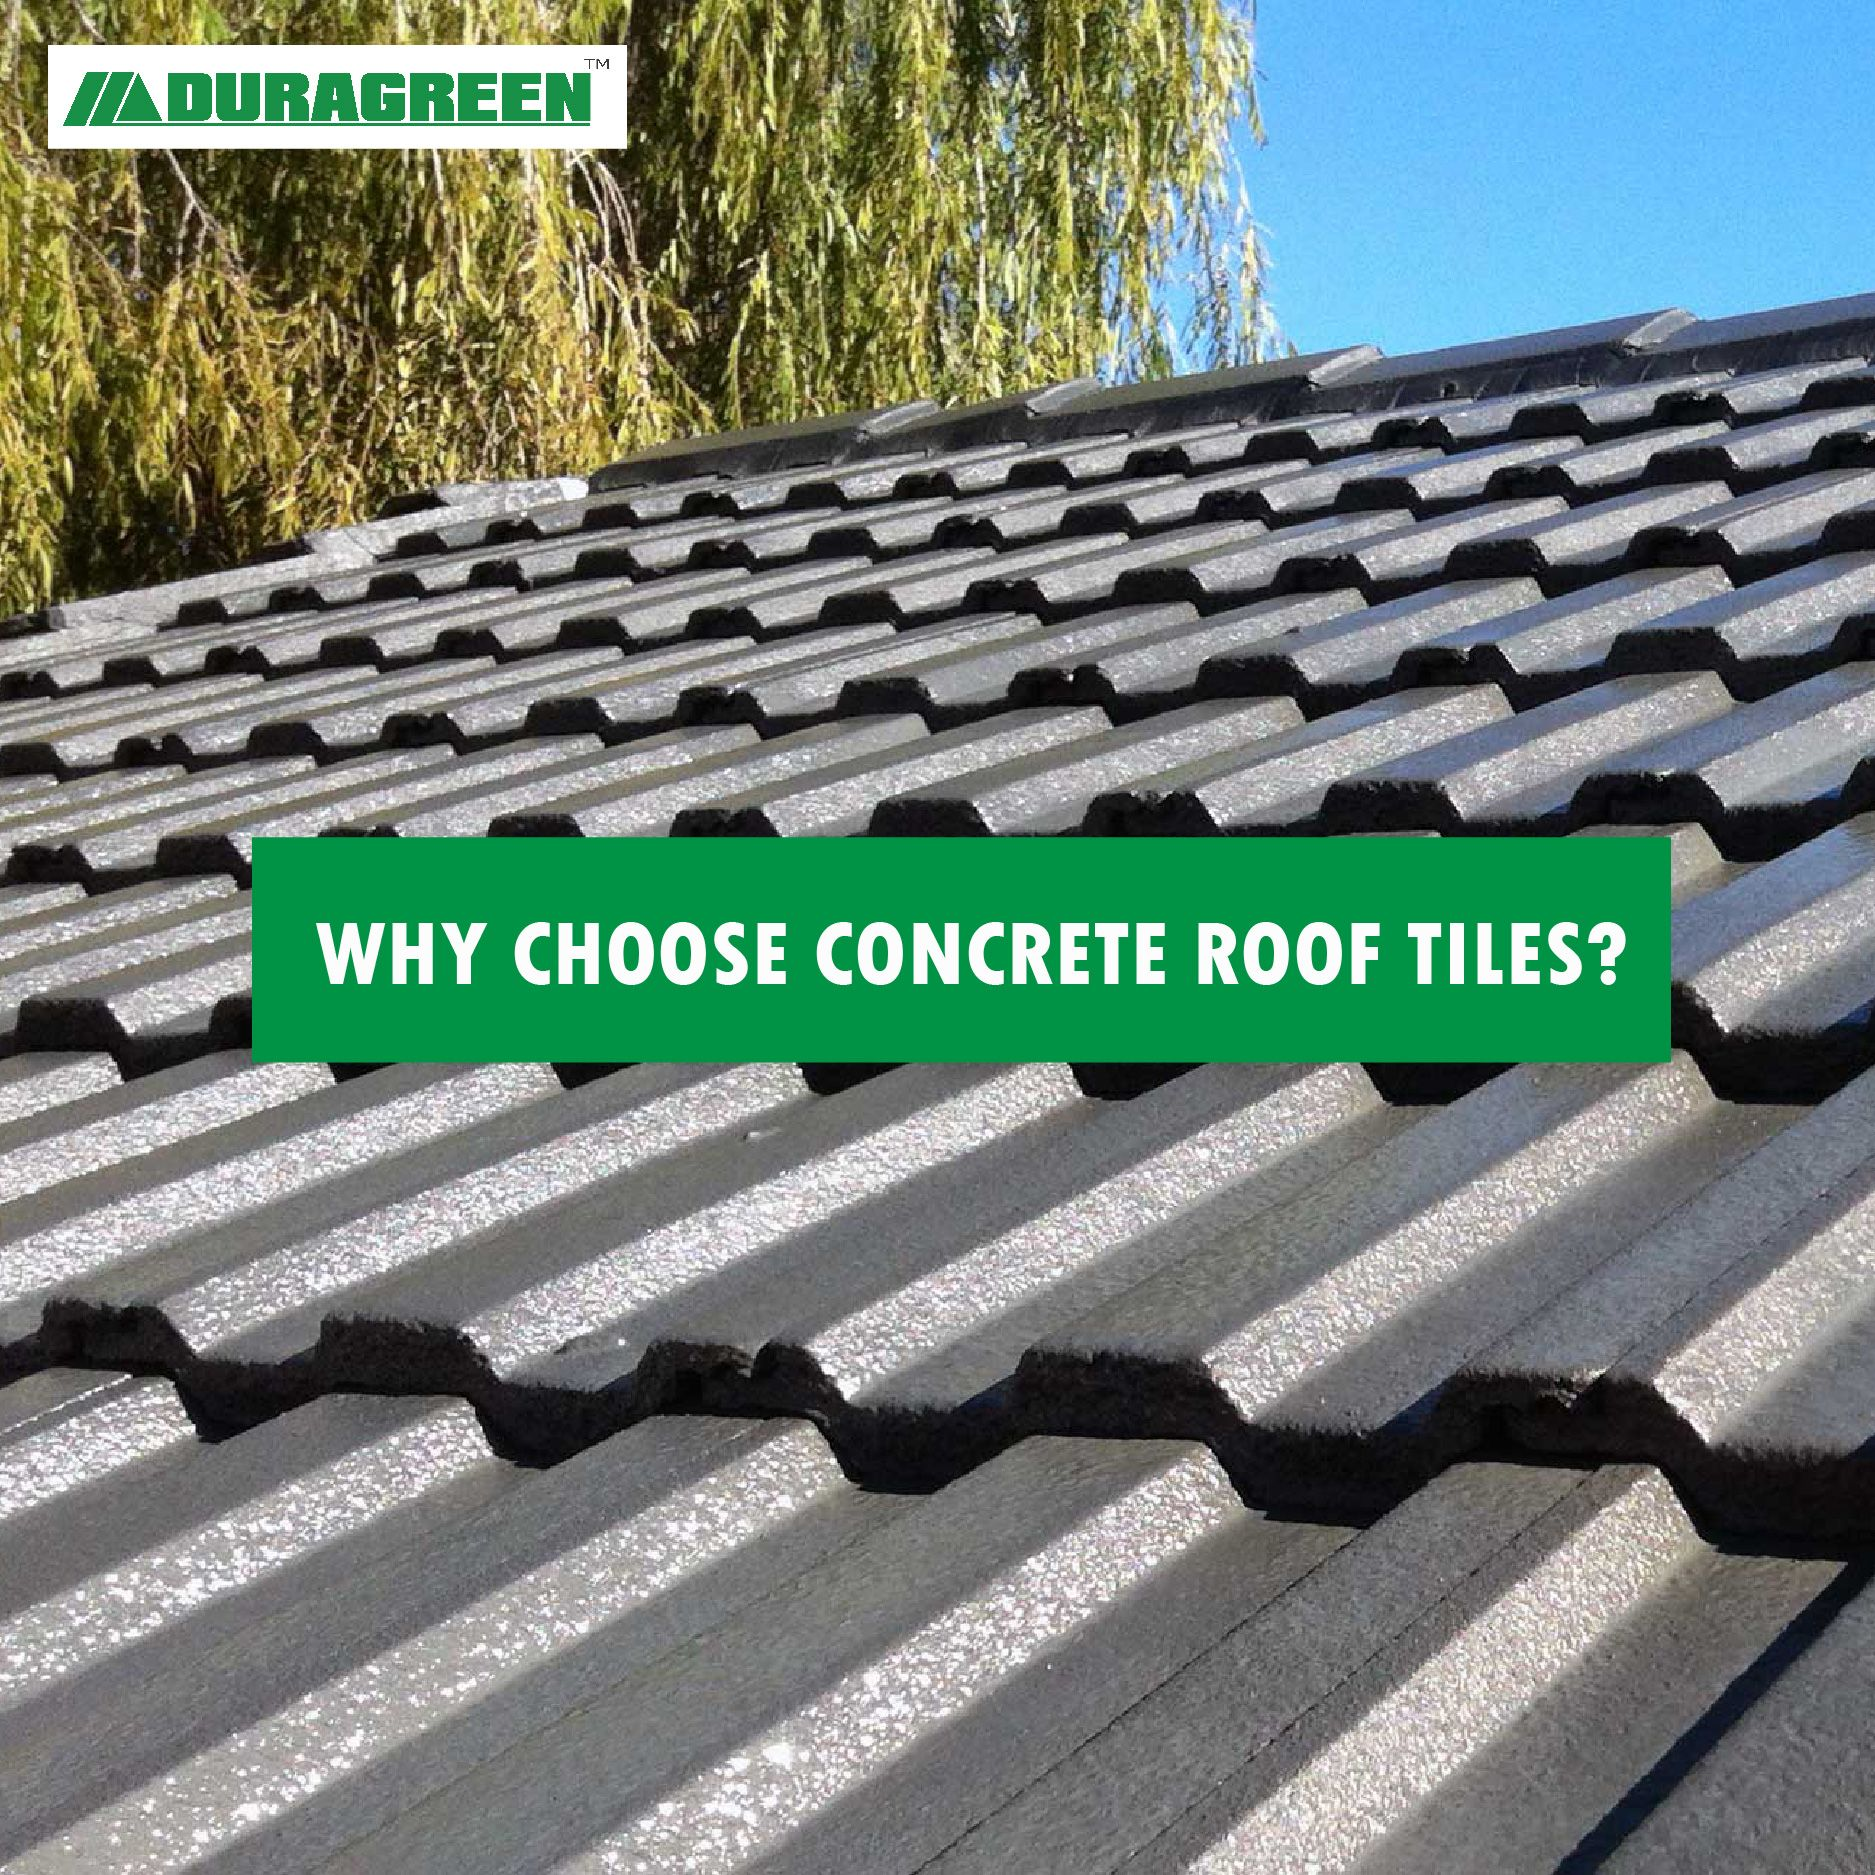 5 Reasons To Choose Concrete Roof Tiles In 2020 Concrete Roof Tiles Concrete Roof Roof Tiles